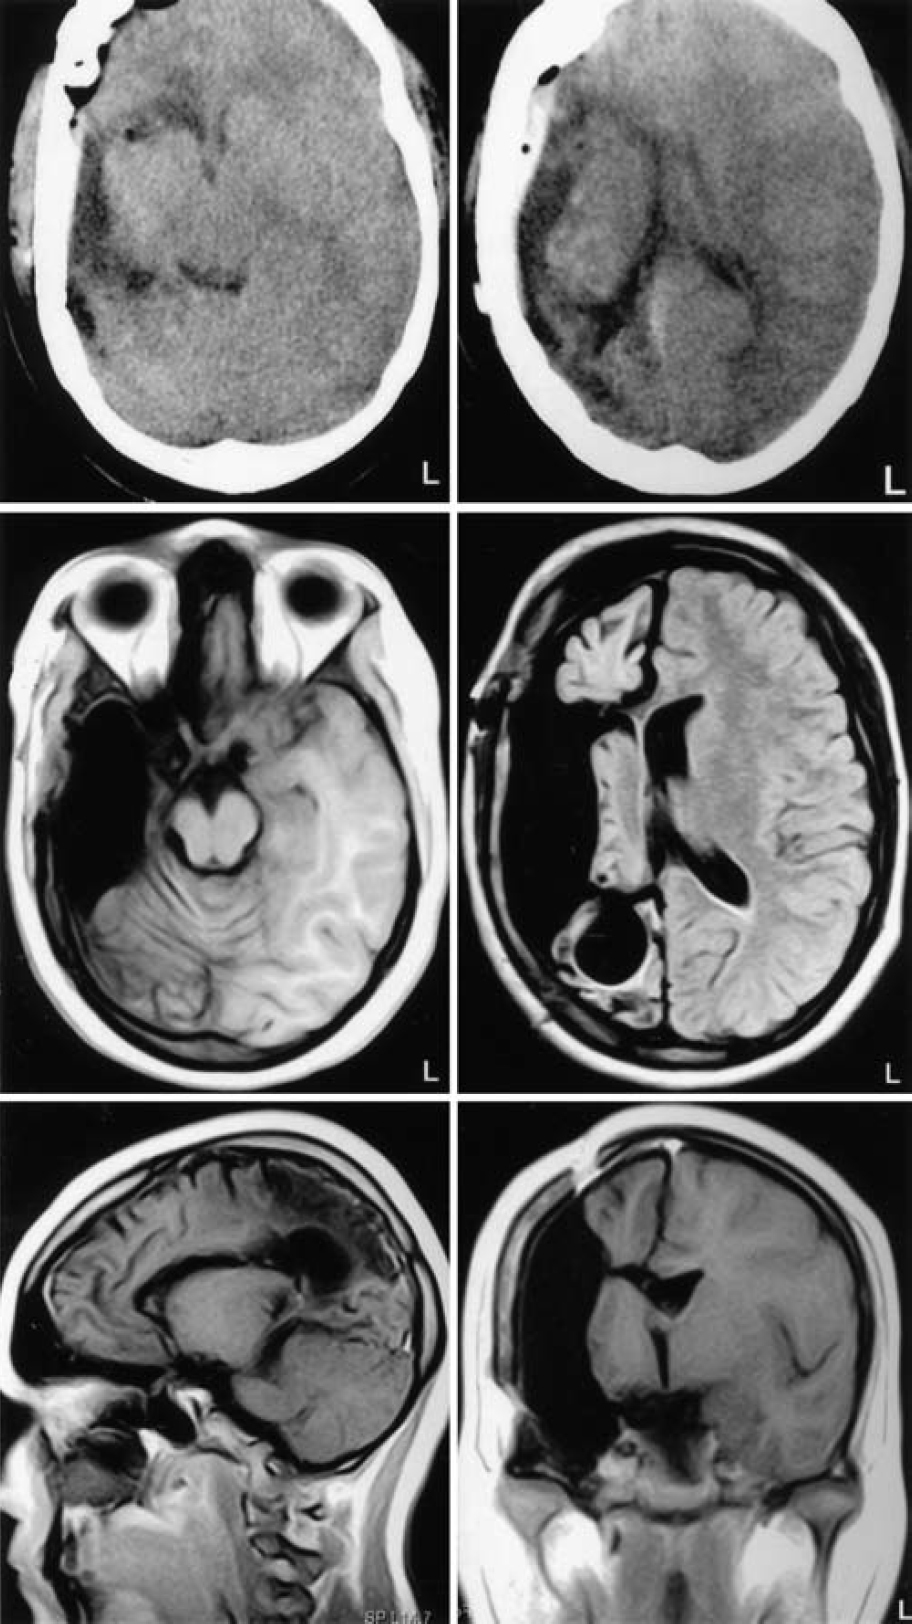 Figure 21.   Upper:  Computerized tomography scans obtained 4 hours after surgery.  Center and Lower:  Postoperative MR images obtained 5 months after surgery. (Images courtesy of AL Rhoton, Jr.)